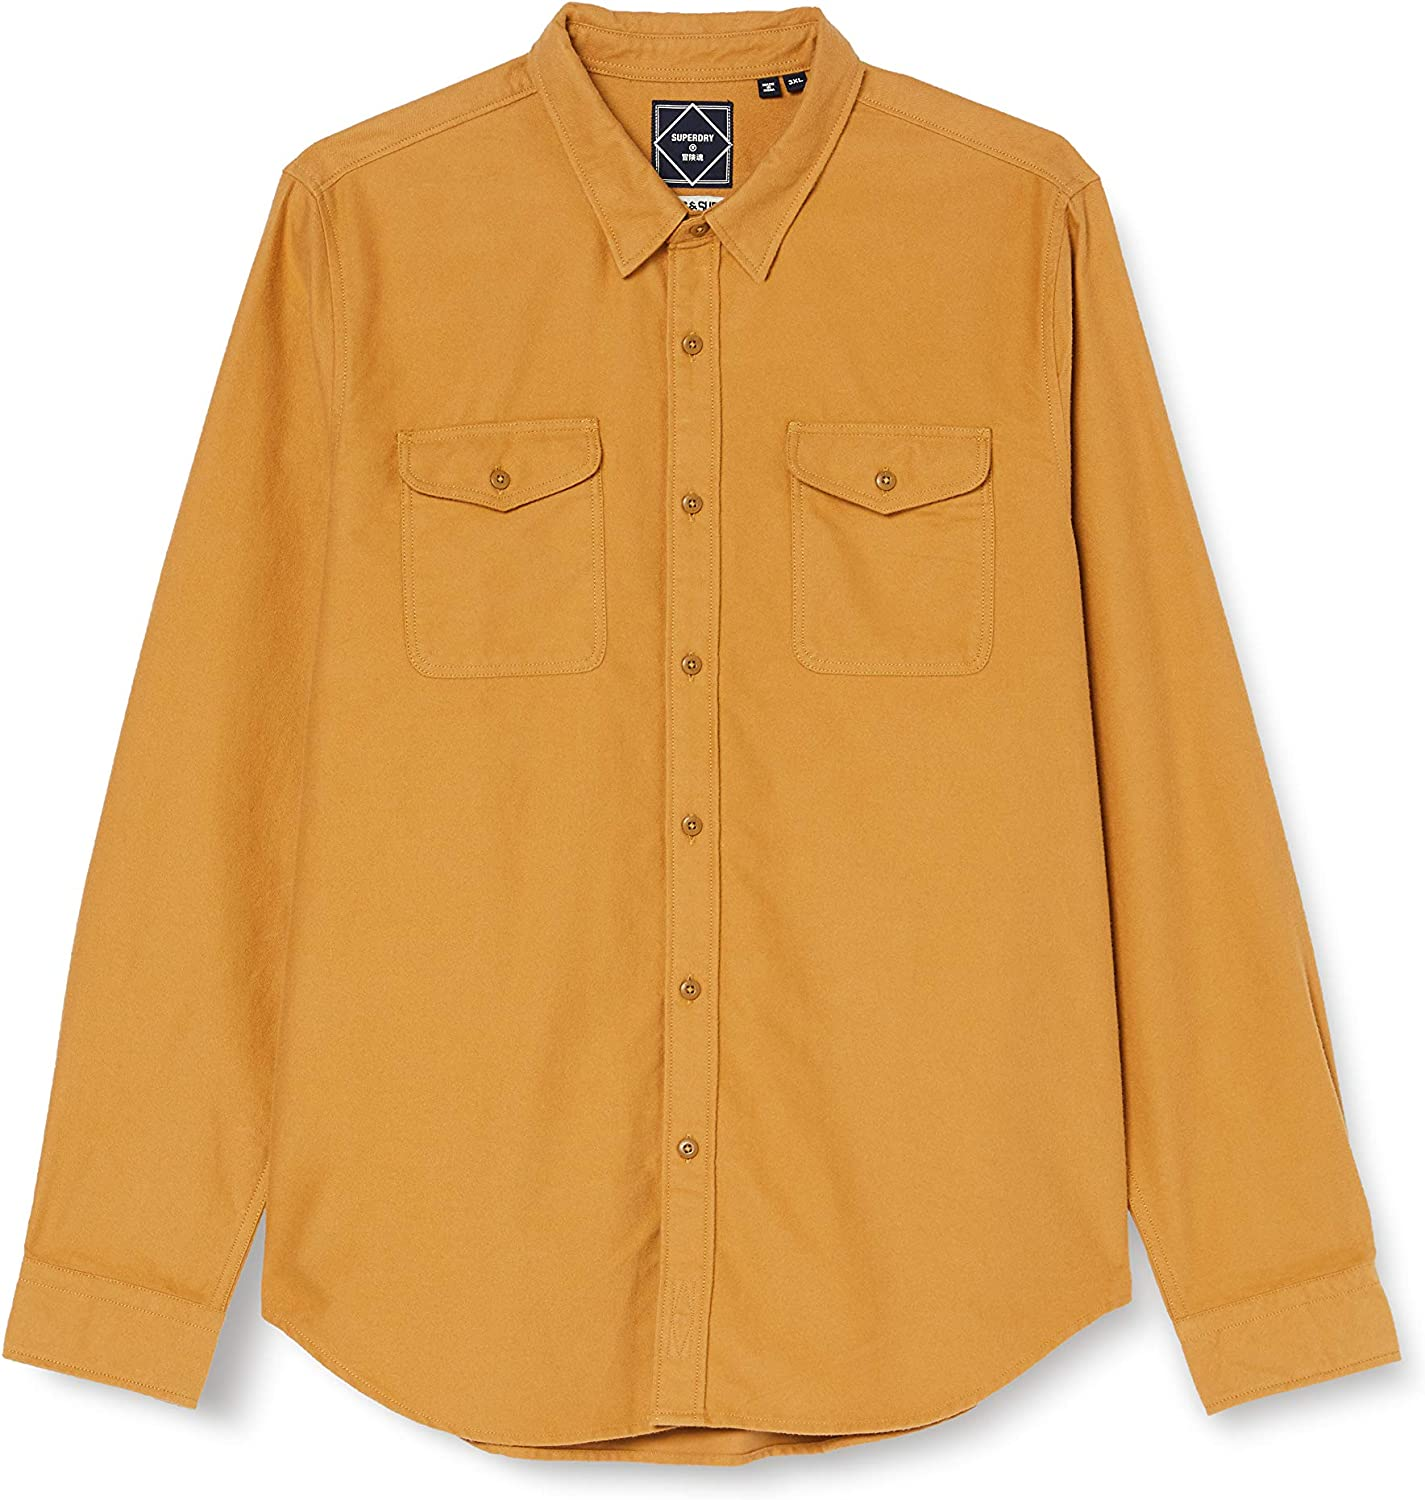 Superdry Men's Free shipping Max 51% OFF New Trailsman Shirt